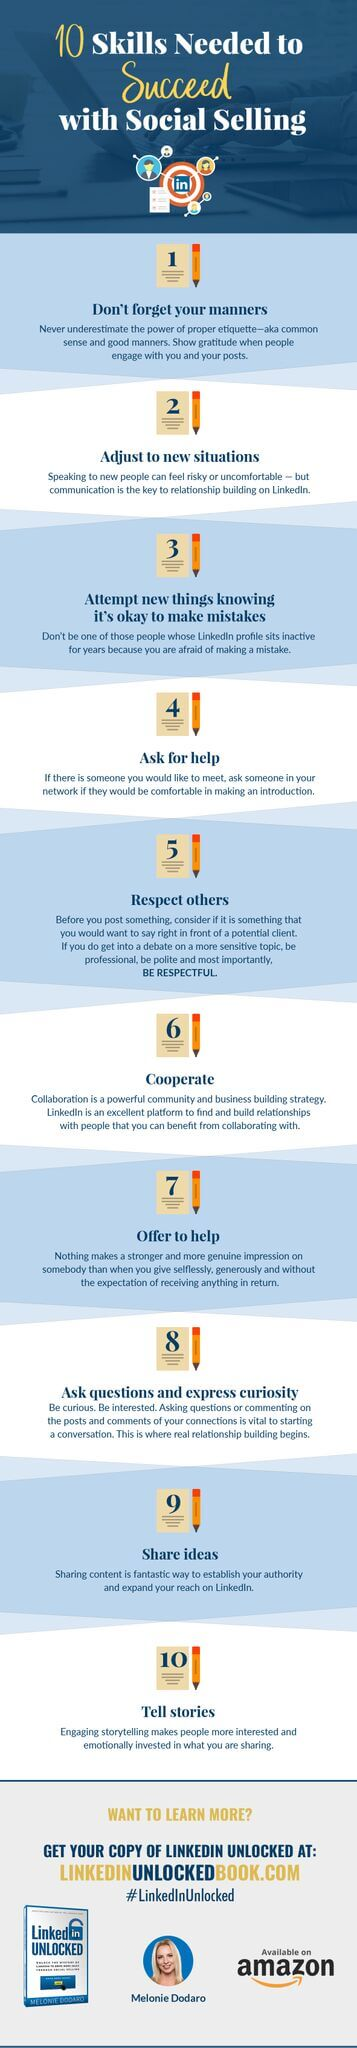 Skills to Succeed with Social Selling on LinkedIn Infographic compressed